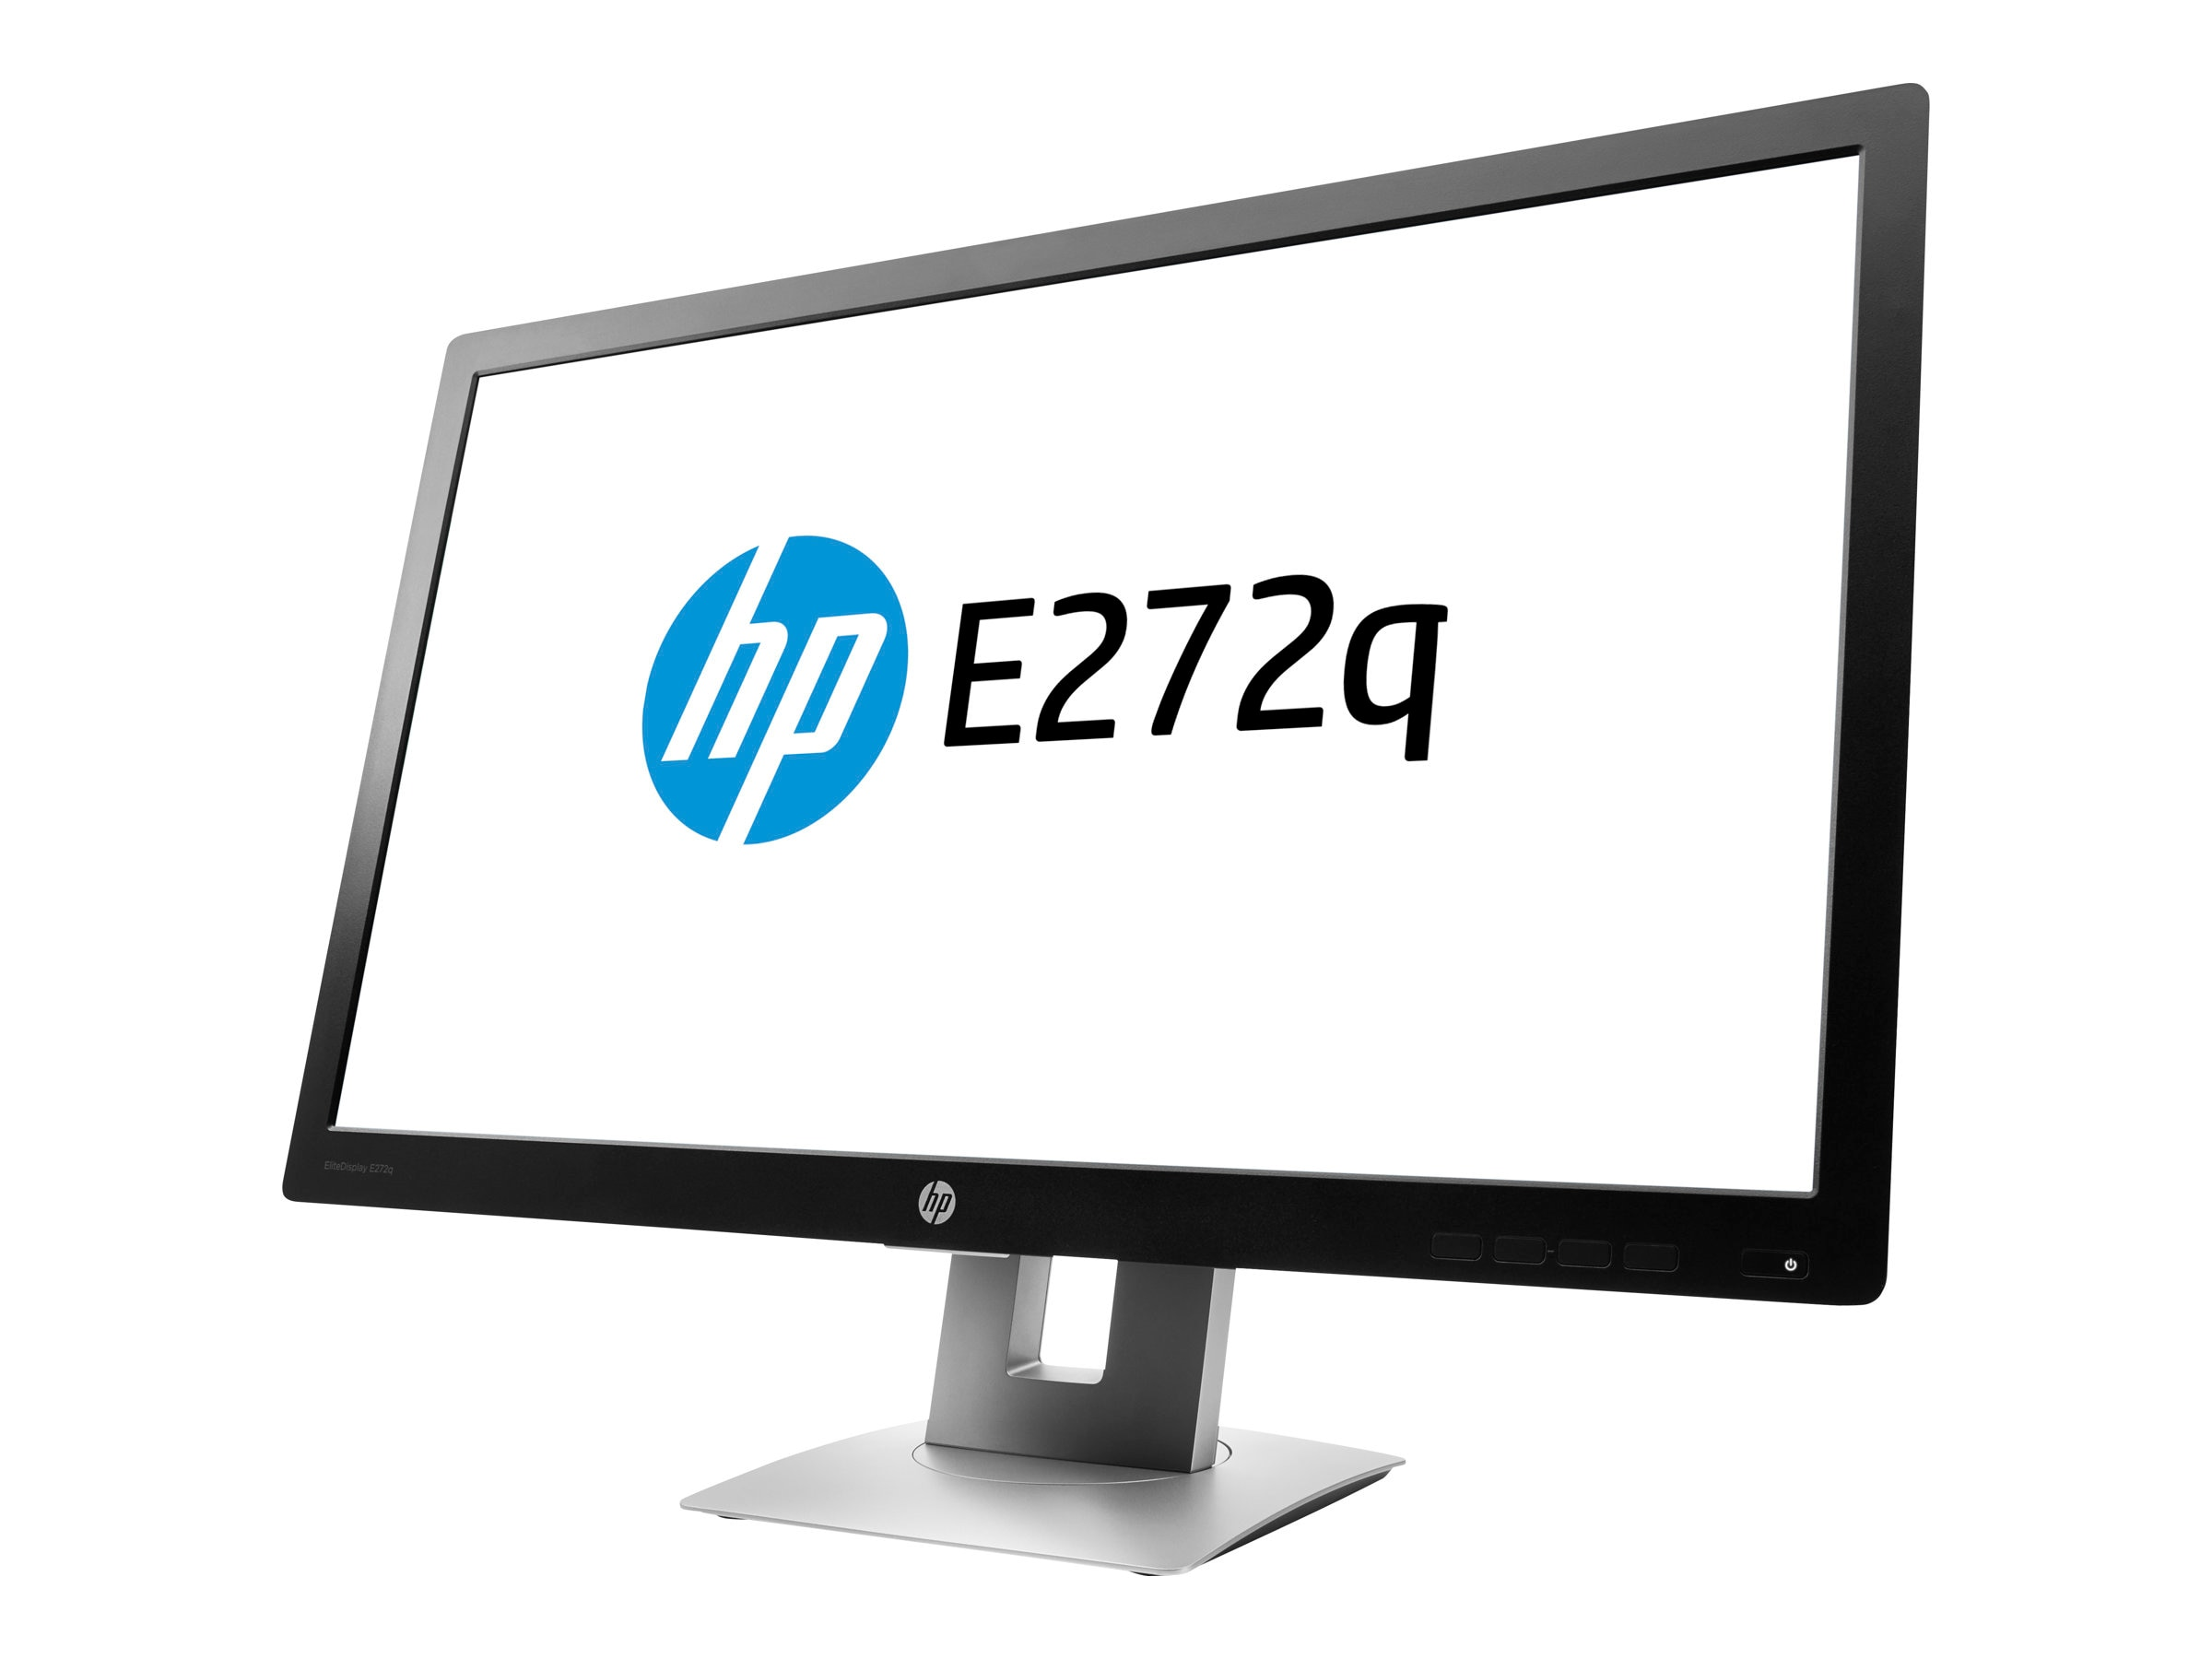 HP 27 E272q Quad HD IPS LED Monitor, Black, M1P04A8#ABA, 31451226, Monitors - Large-Format LED-LCD